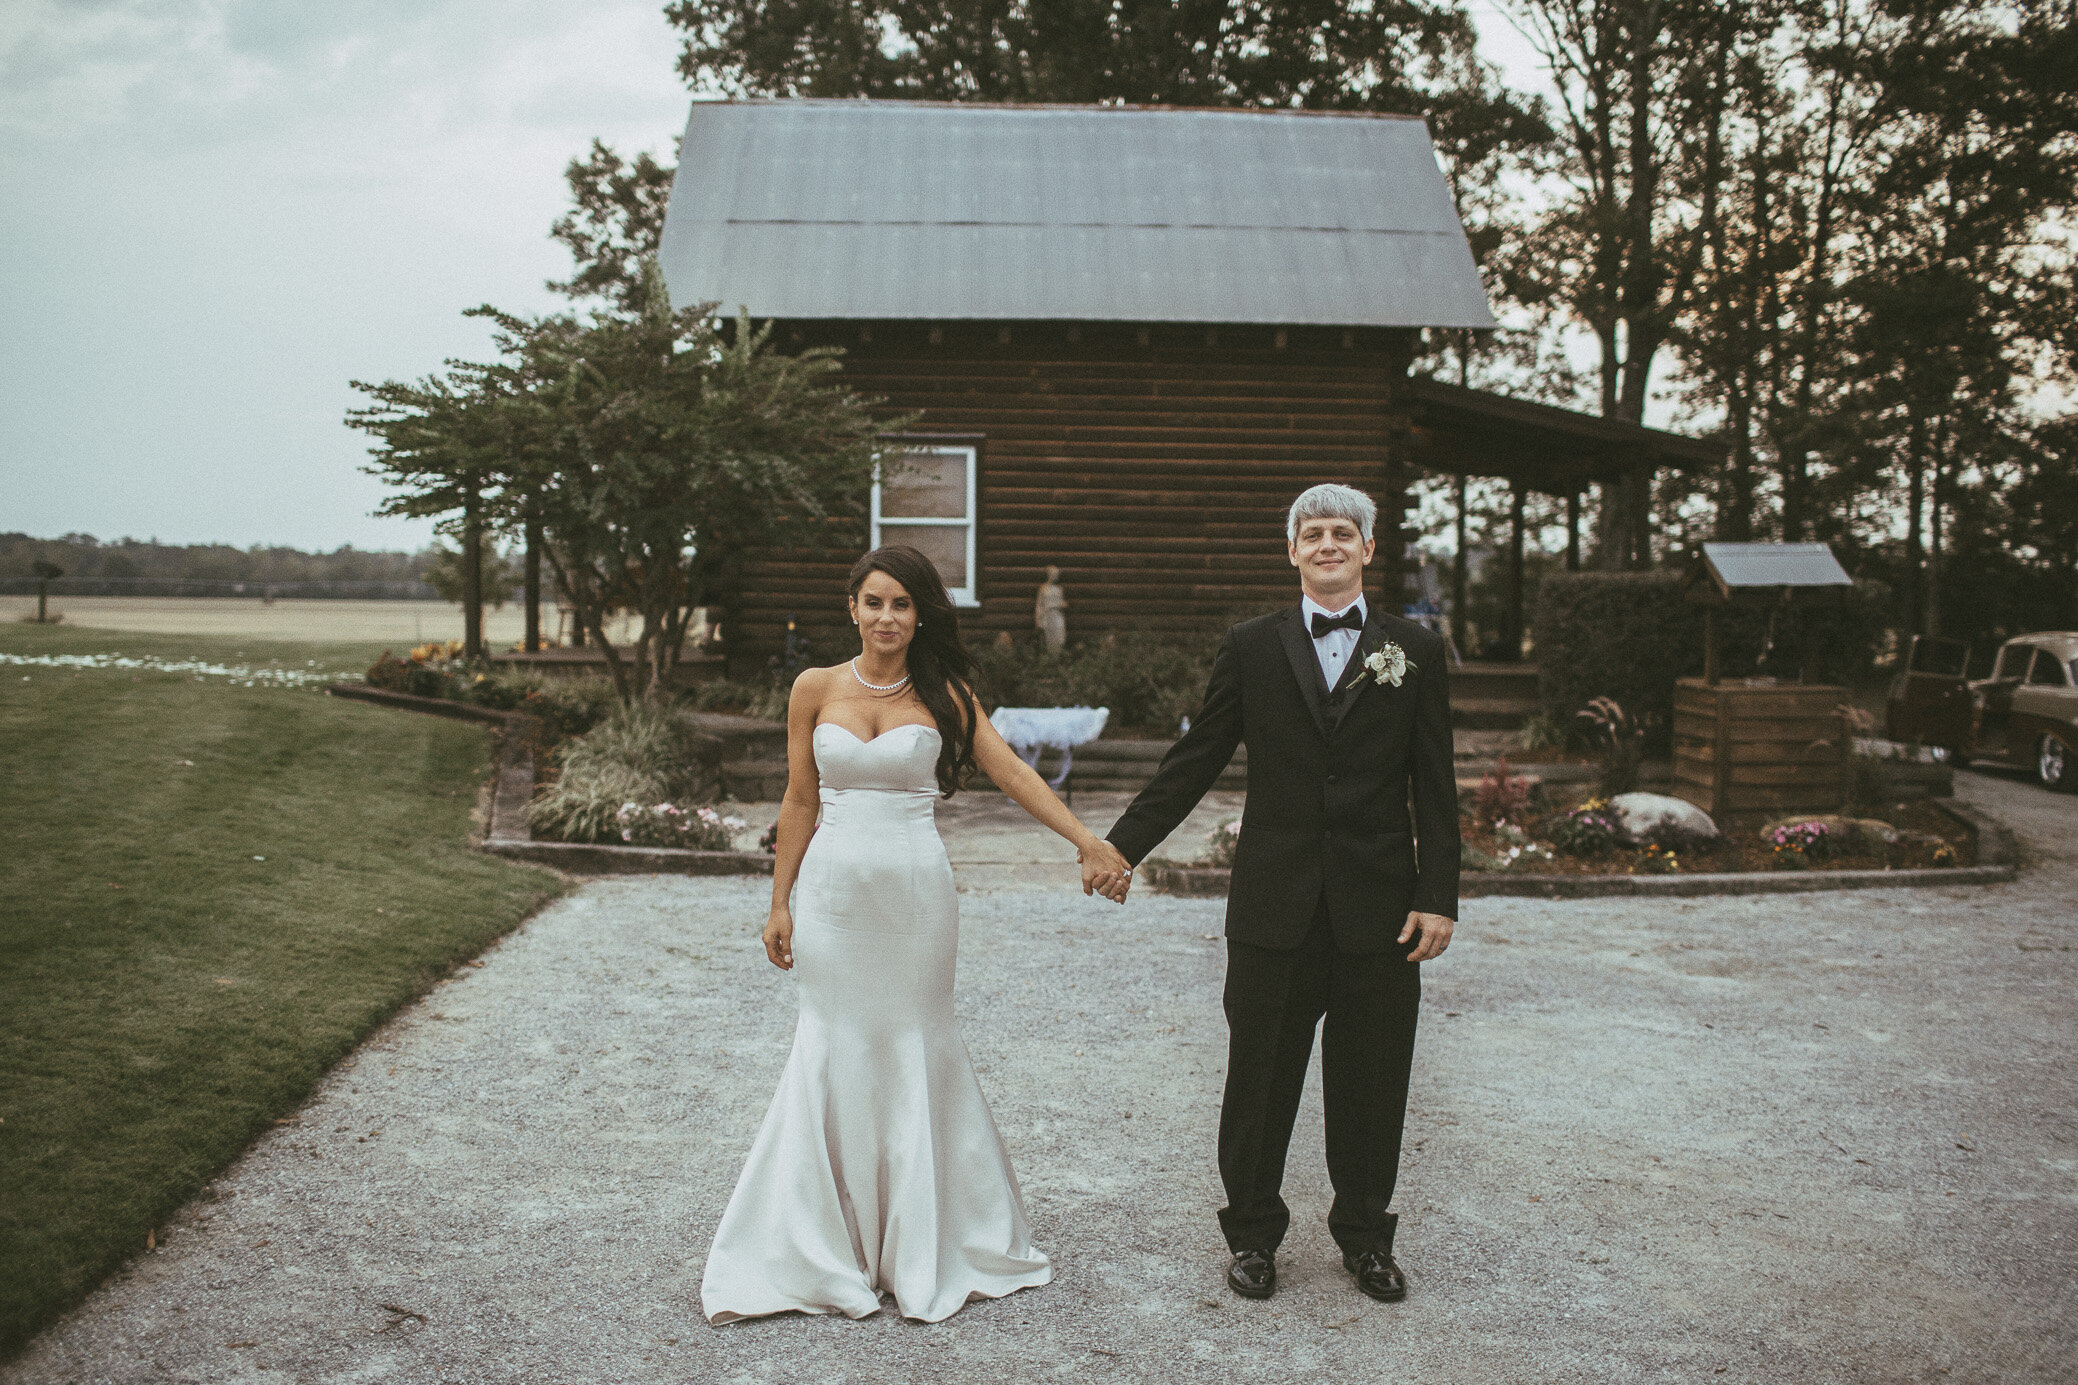 Vermont Wedding Photography and Elopement Photography pricing information.